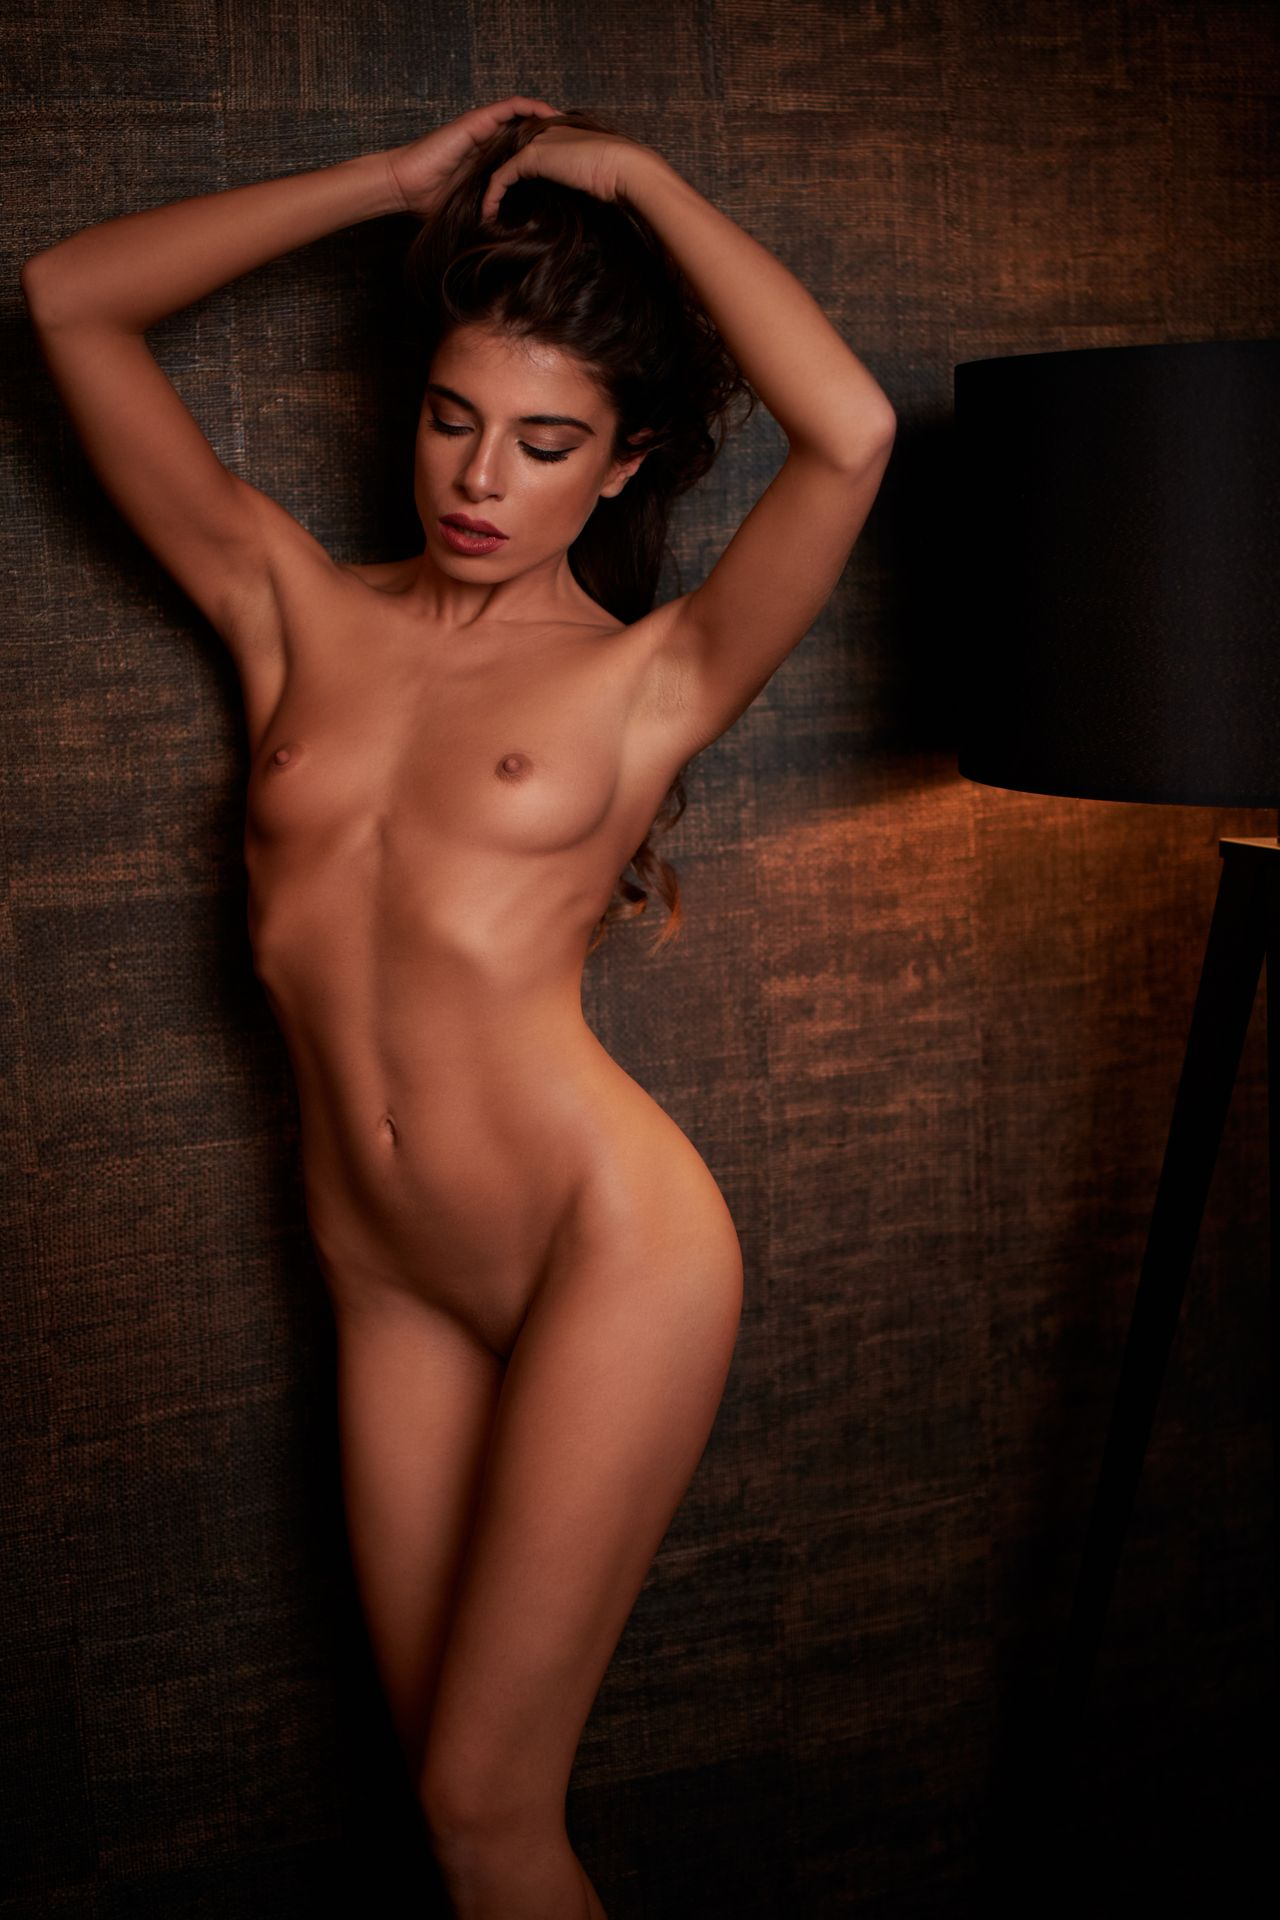 Images of naked celebrities with tag italian